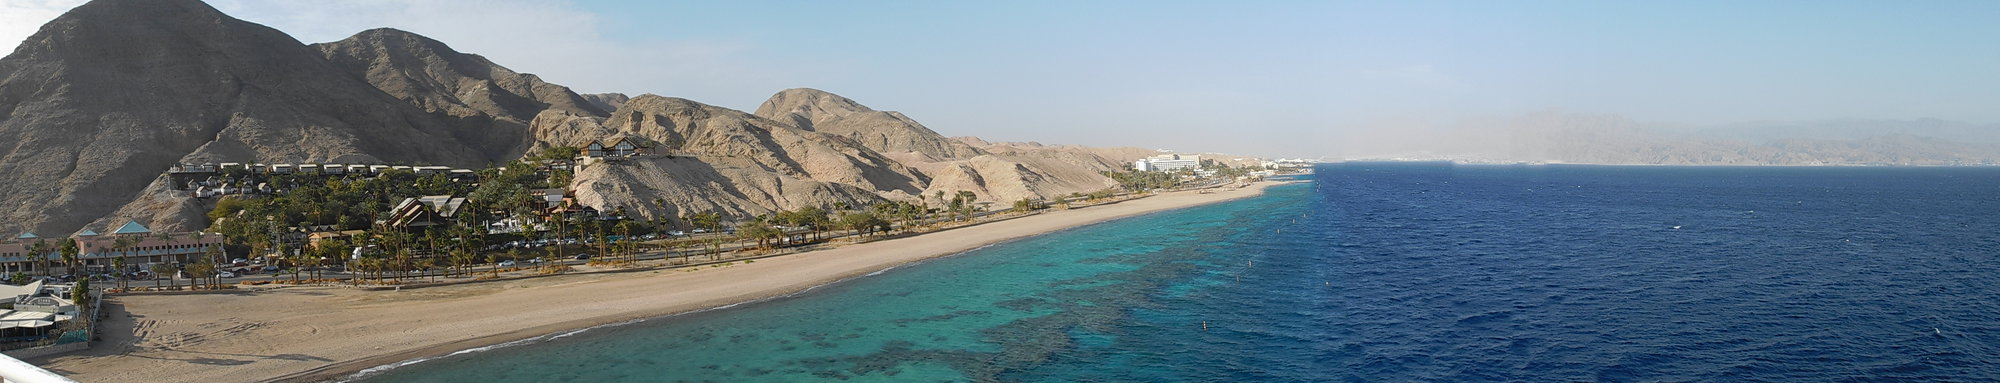 observation tower, the Red Sea and coral reef